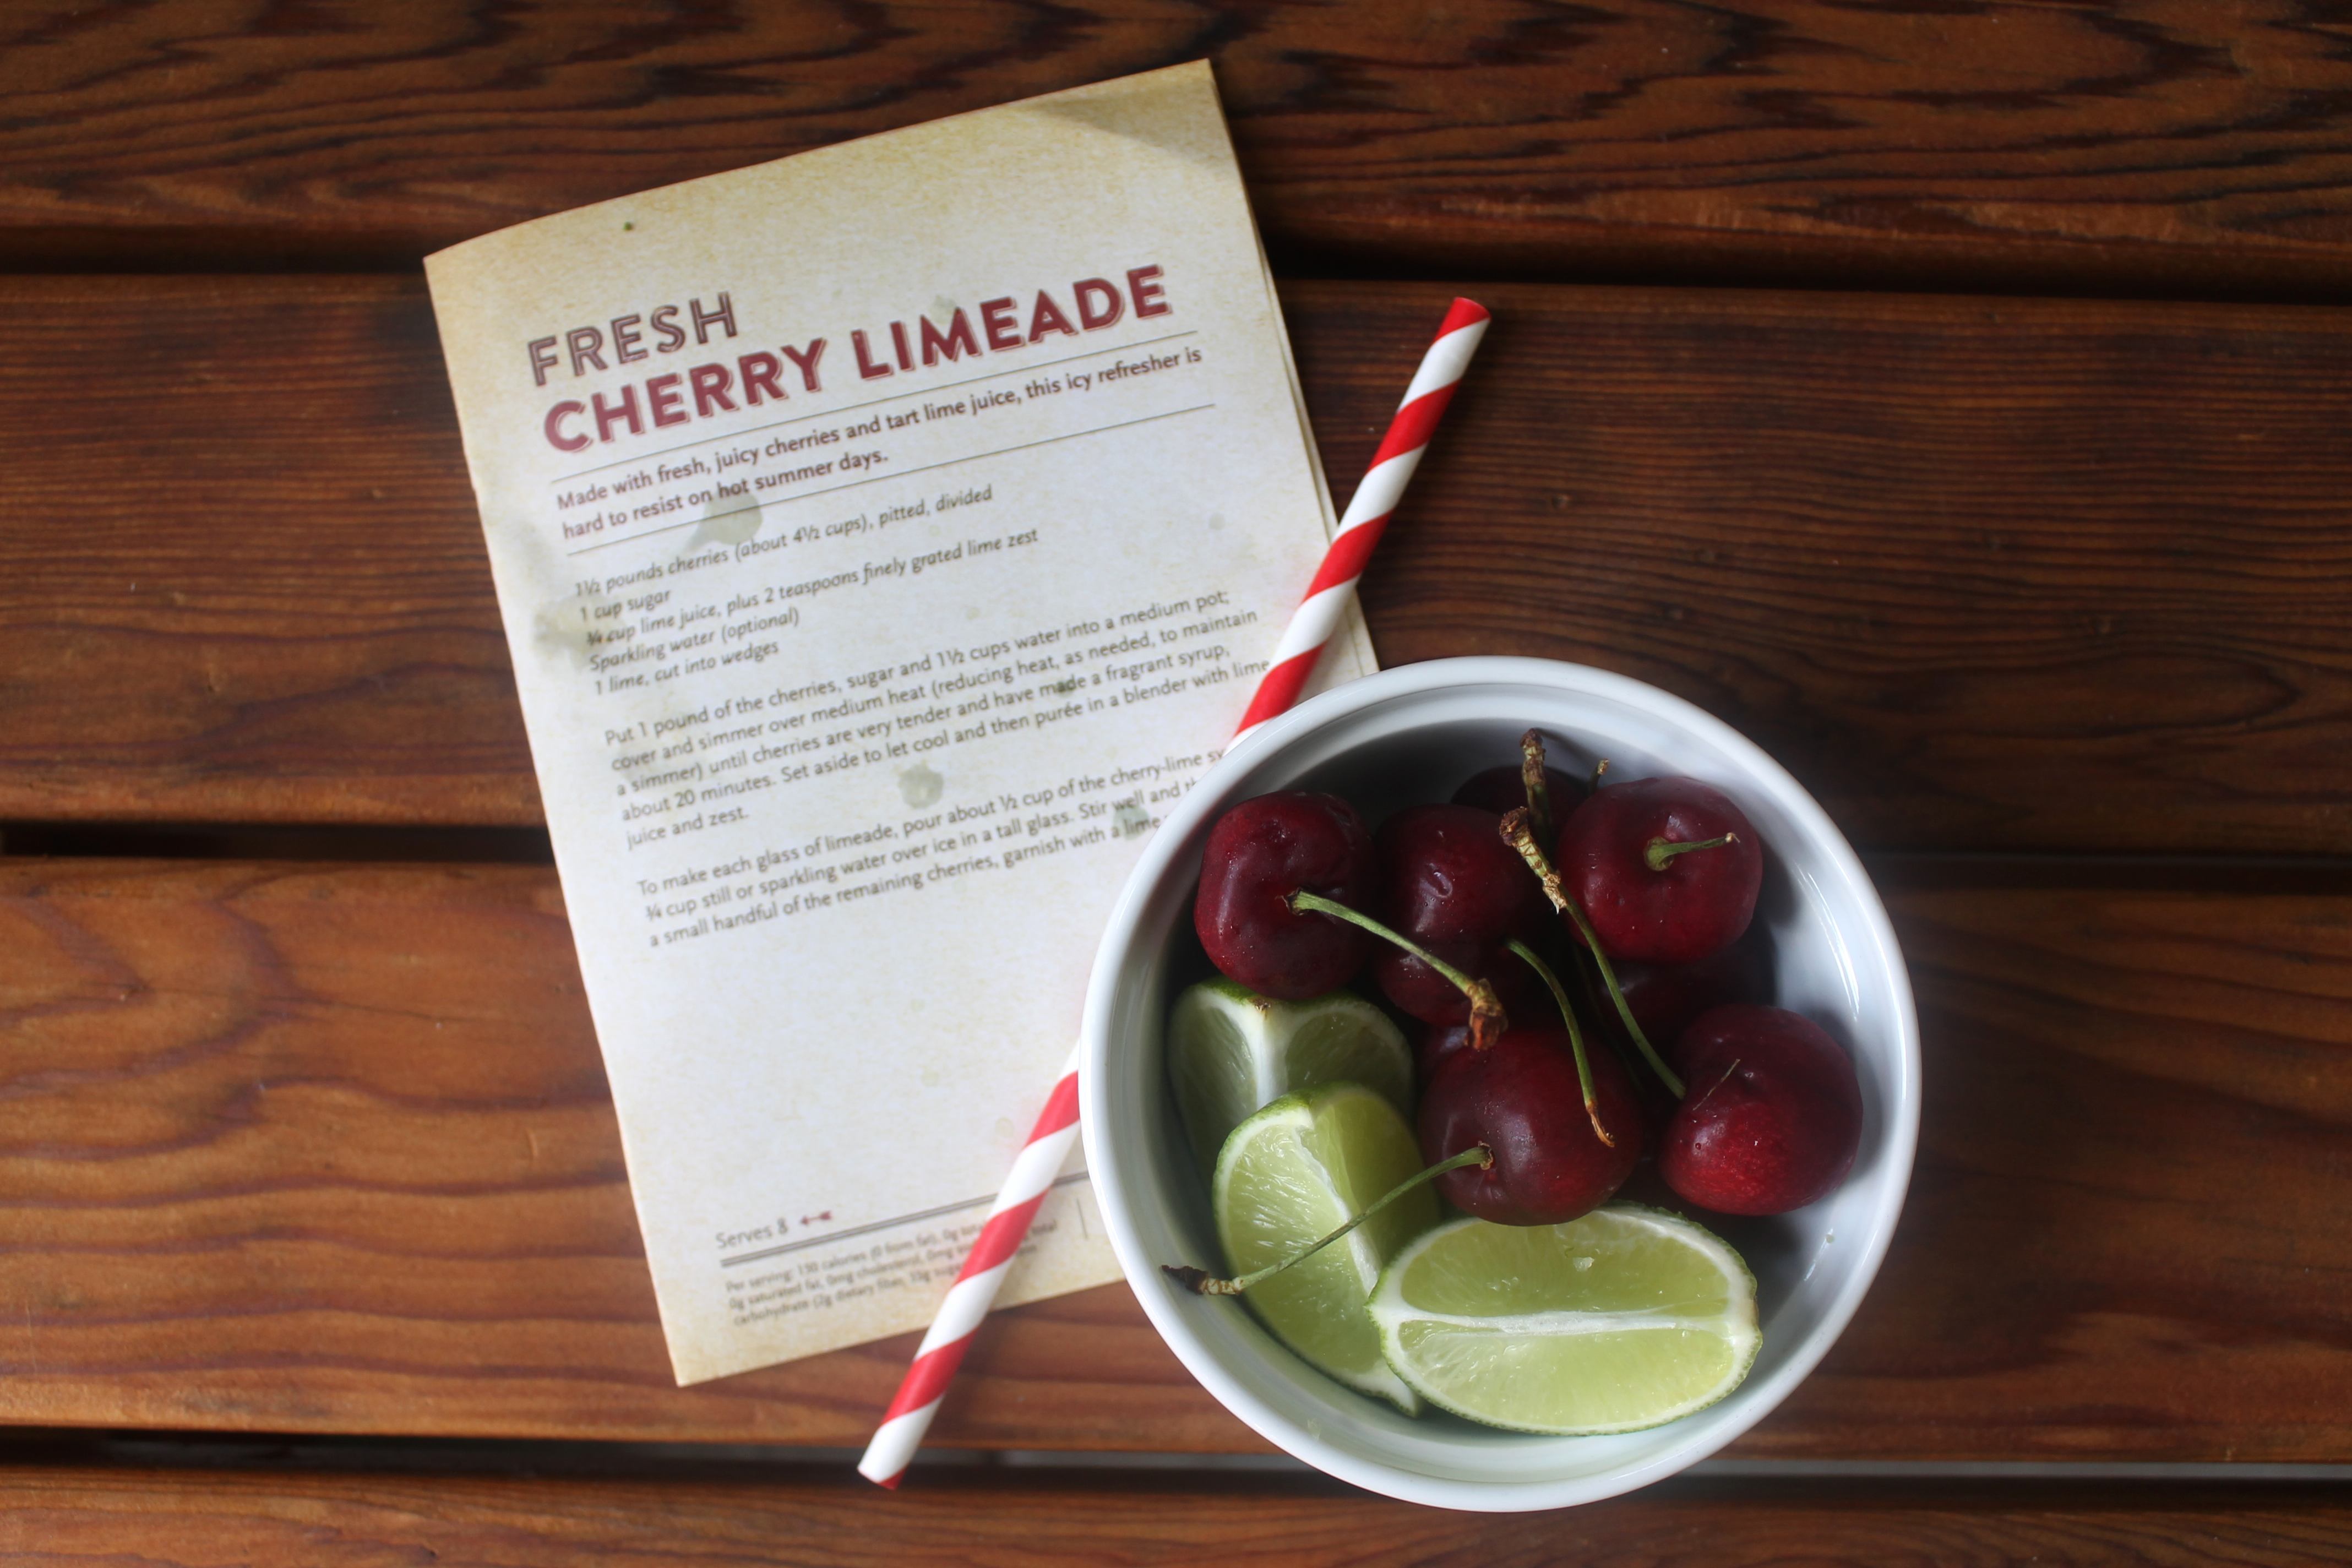 #WFMCherryFest // Fresh Cherry Limeade Recipe + Giveaway